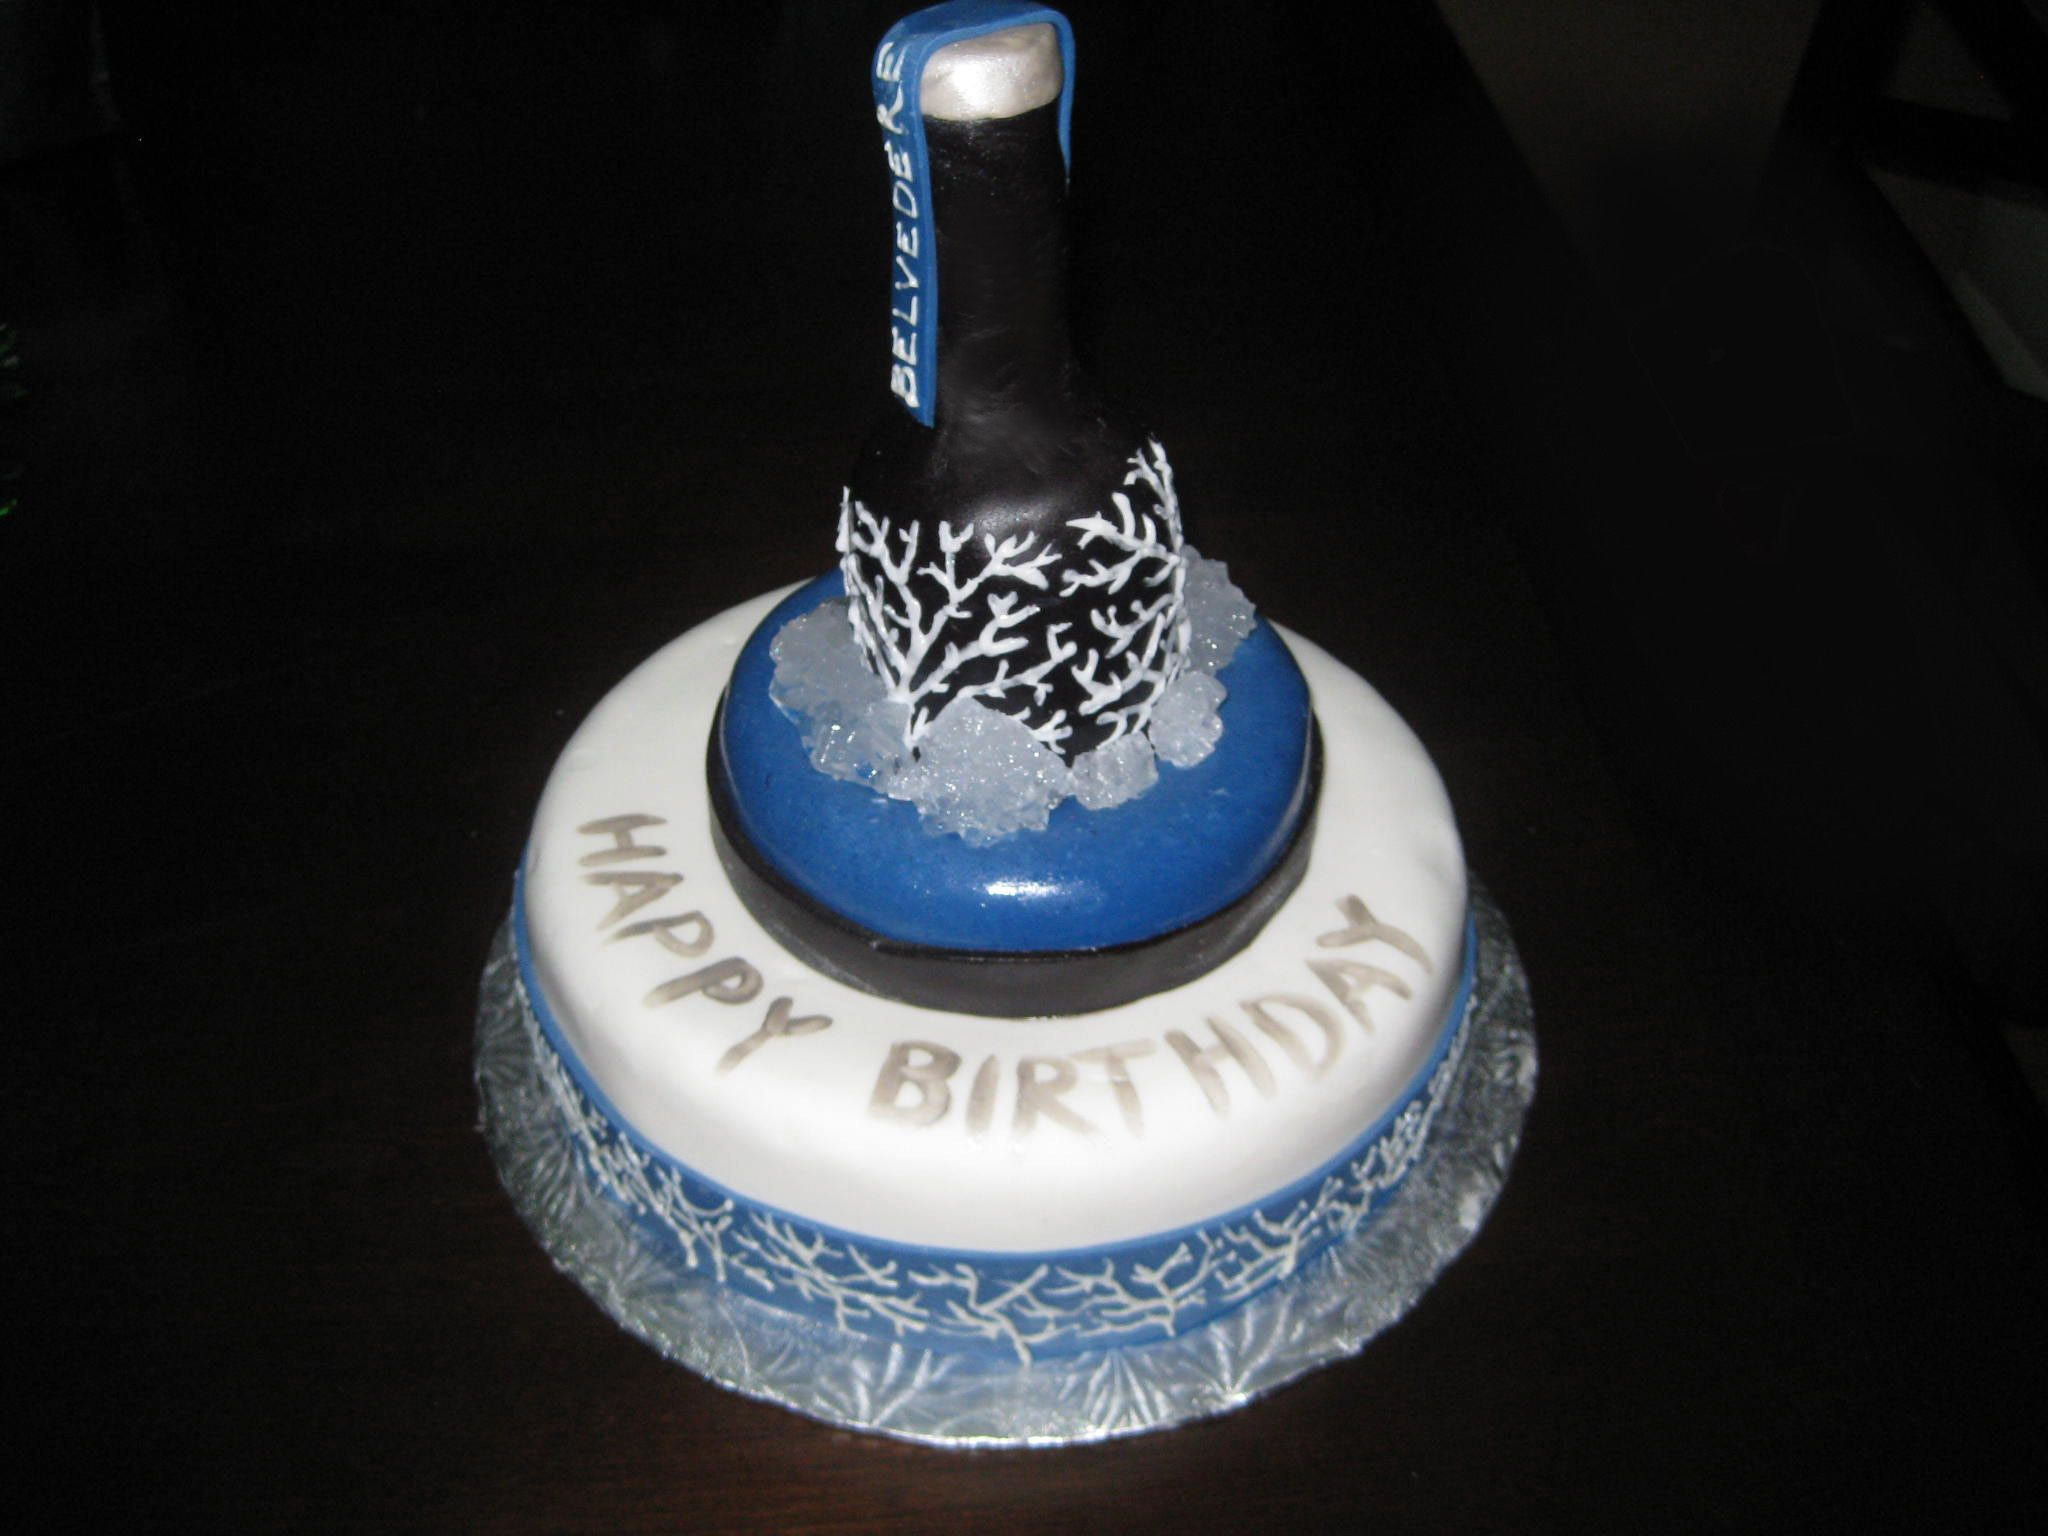 Awe Inspiring Belvedere Vodka Bottle Cake With Images Bottle Cake 21St Cake Funny Birthday Cards Online Alyptdamsfinfo